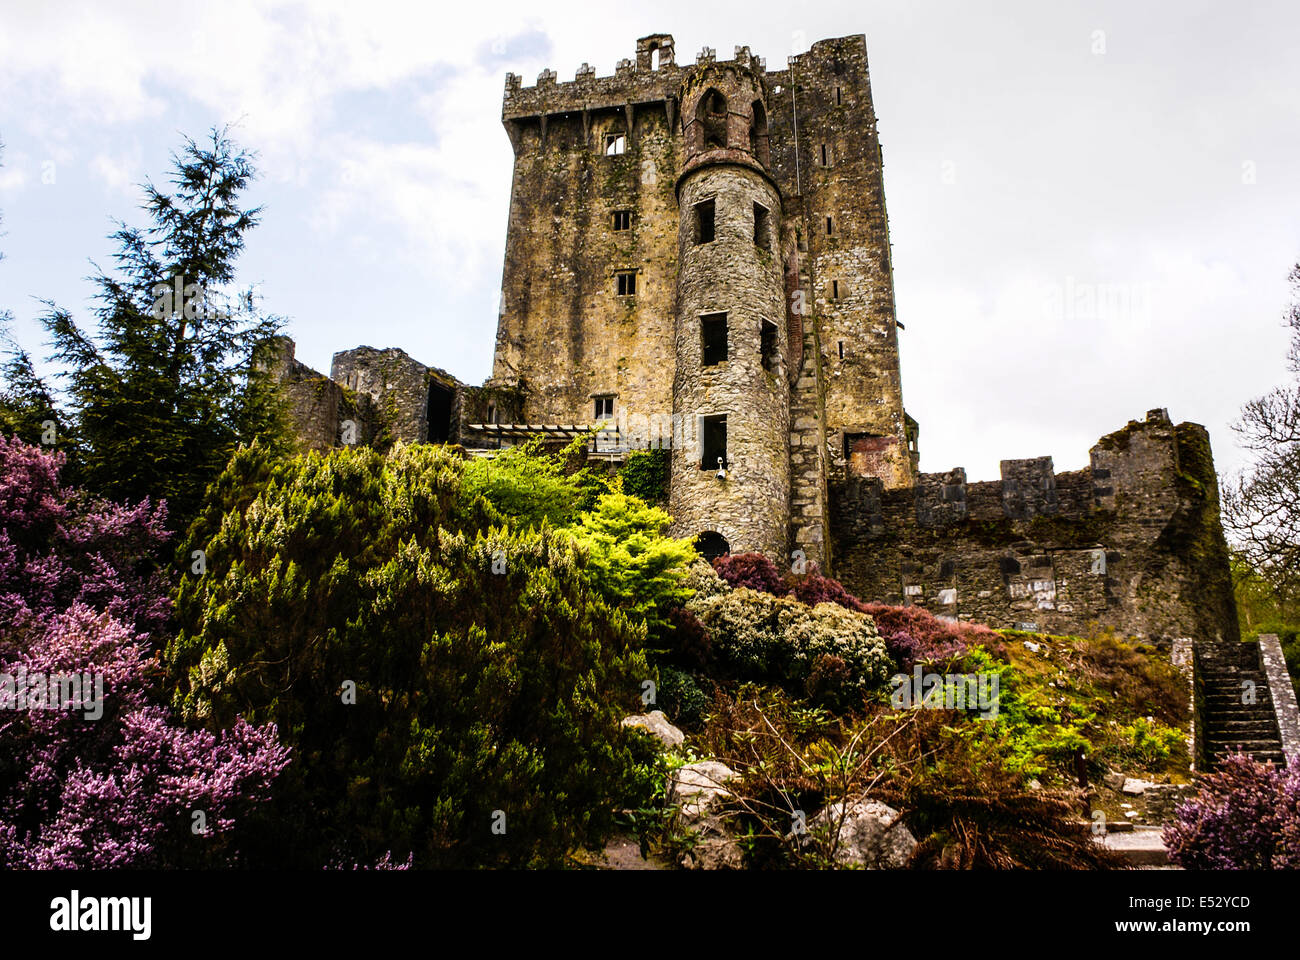 Irish castle of Blarney , famous for the stone of eloquence. Ireland - Stock Image